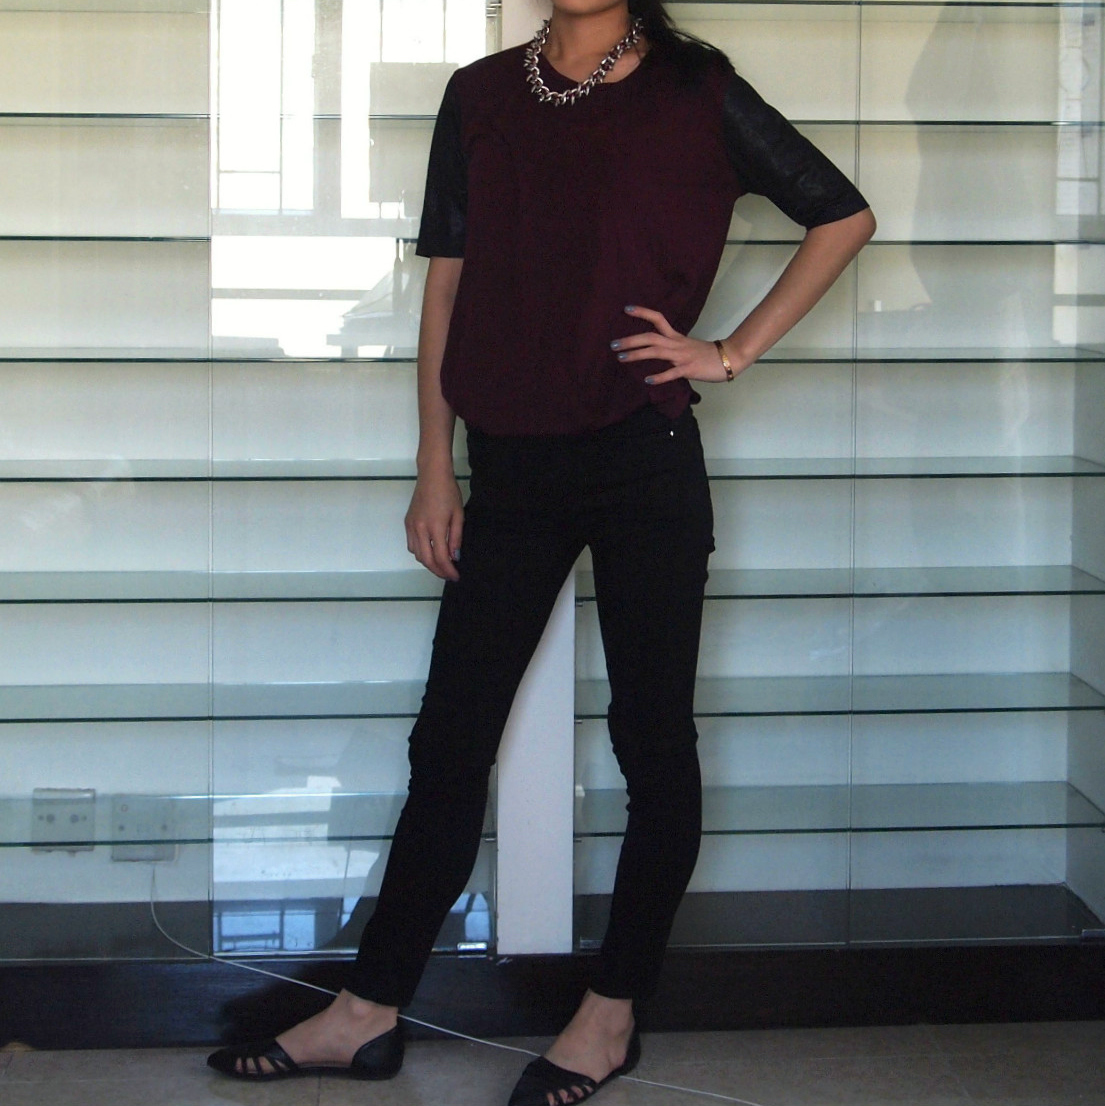 Zara tee & necklace, Topshop jeans, Forever 21 flats